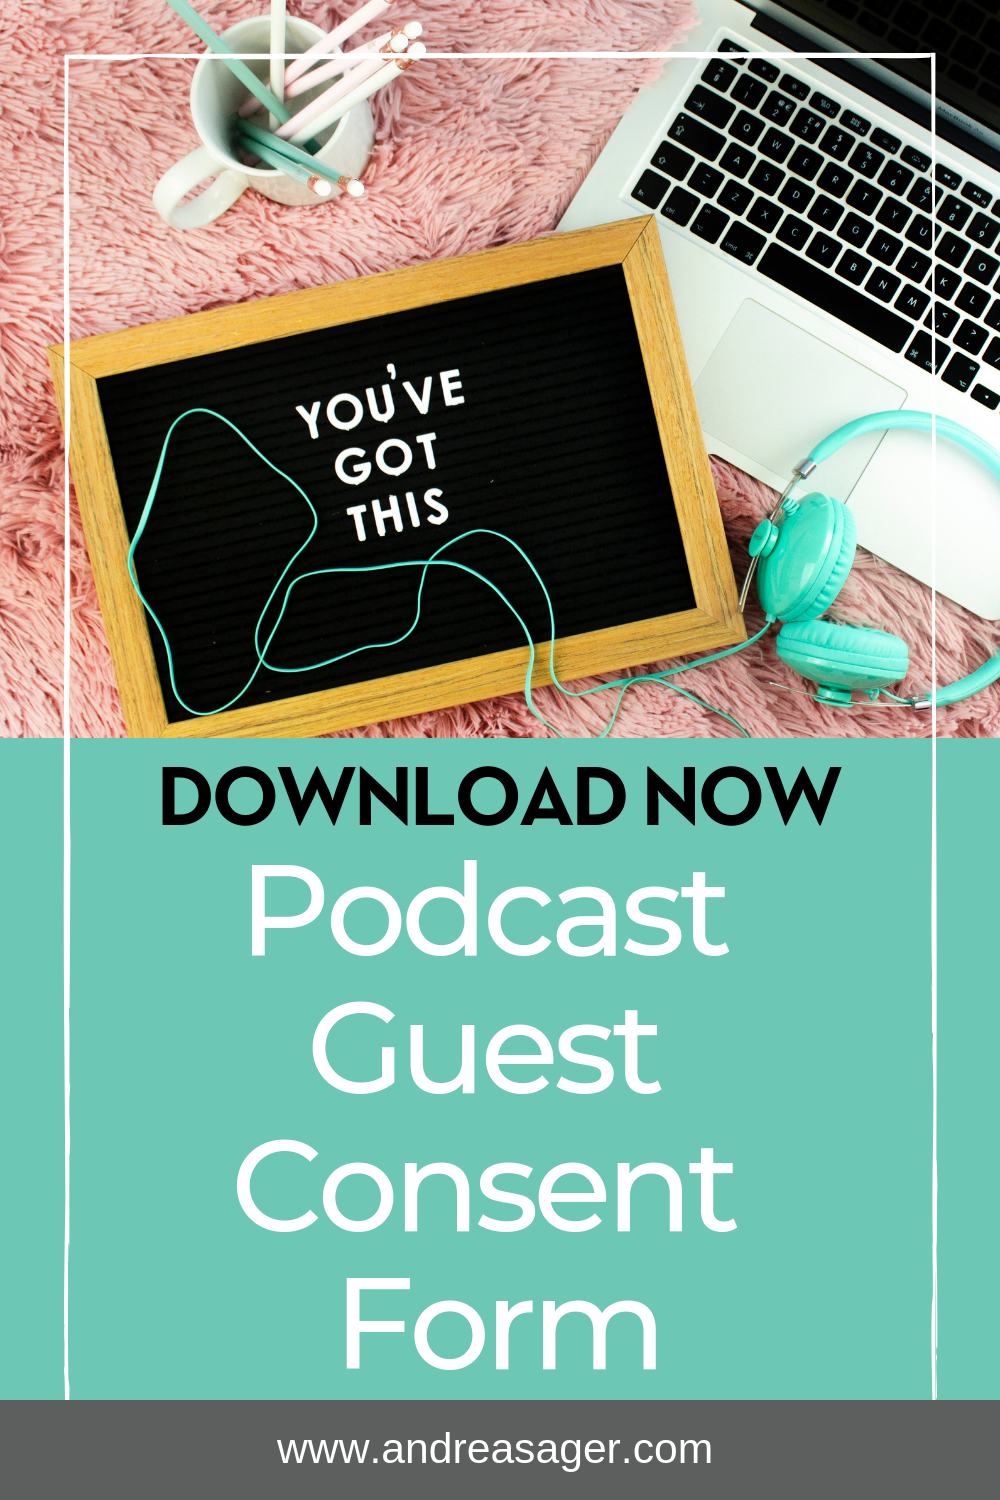 FREE DOWNLOAD Podcast Guest Consent Form  Tips for podcast hosts